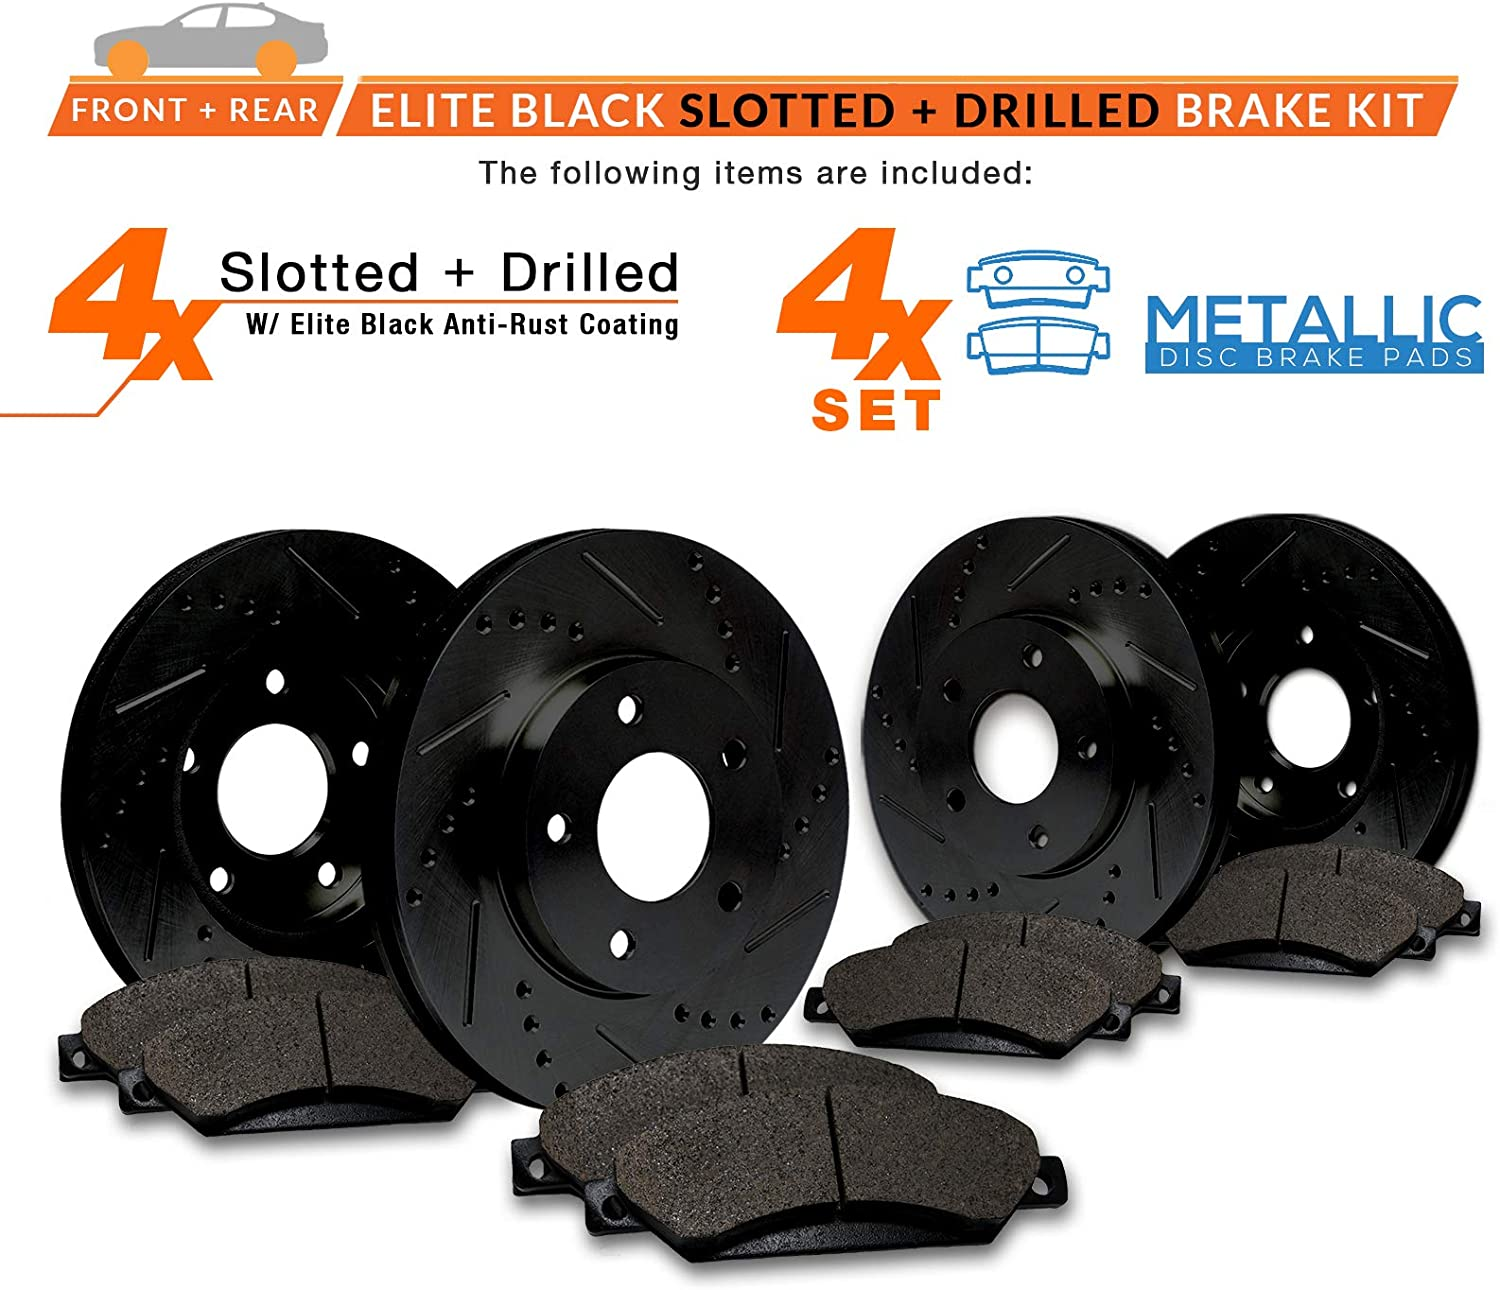 E-Coated Slotted Drilled Rotors + Metallic Pads Max Brakes Front /& Rear Elite Brake Kit TA053283 Fits: 2007 07 2008 08 2009 09 2010 10 Jeep Wrangler